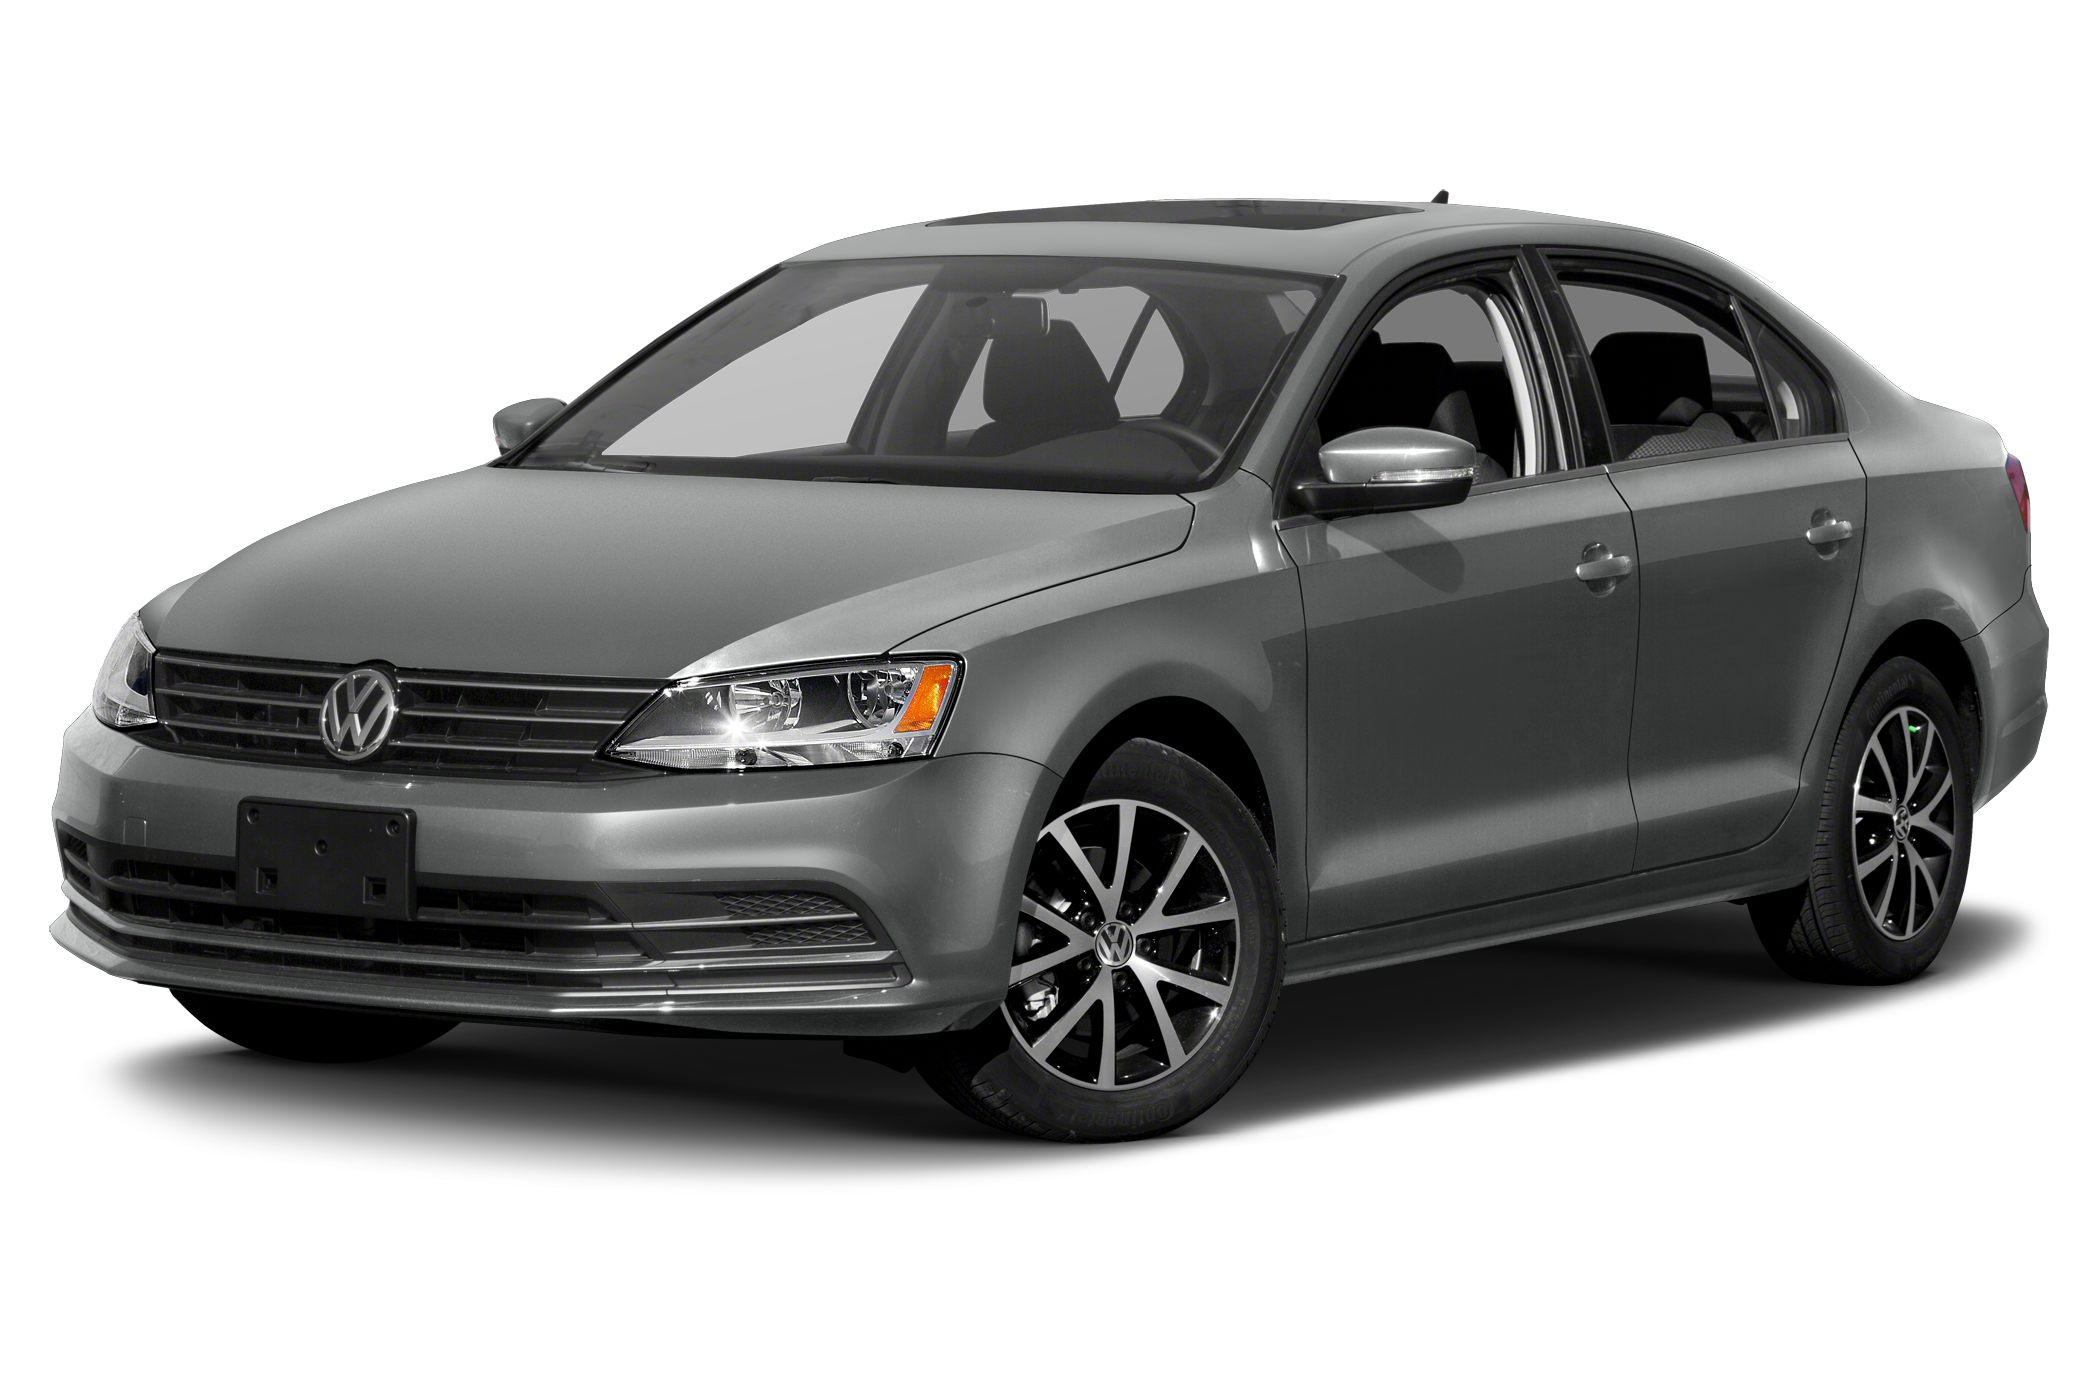 2015 Volkswagen Jetta 1.8T SE Sedan for sale in Fairfax for $0 with 0 miles